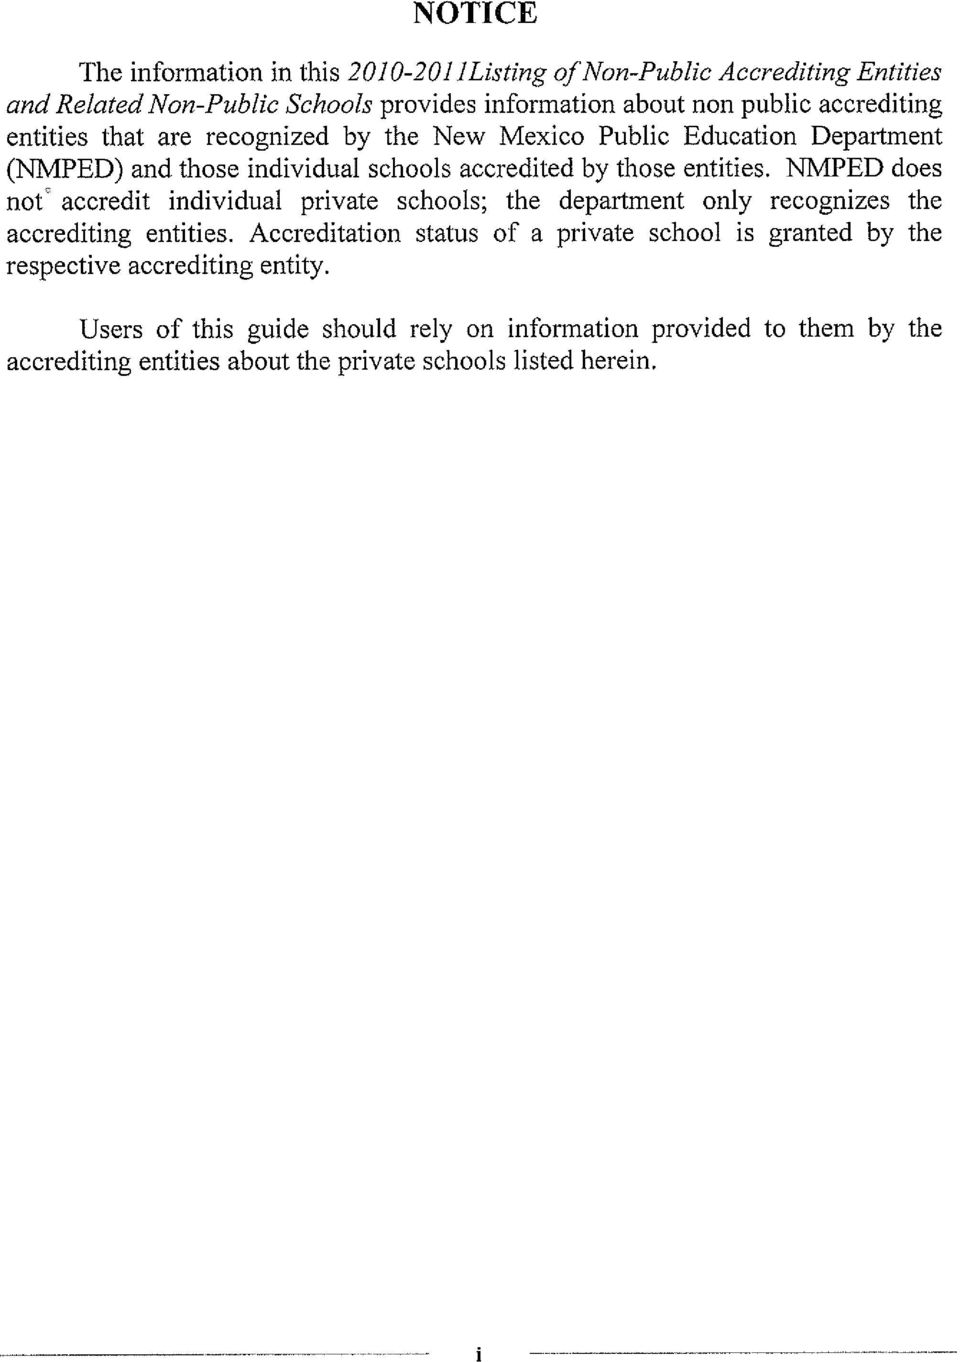 NMPED does not ~ accredit individual private schools; the department only recognizes the accrediting entities.